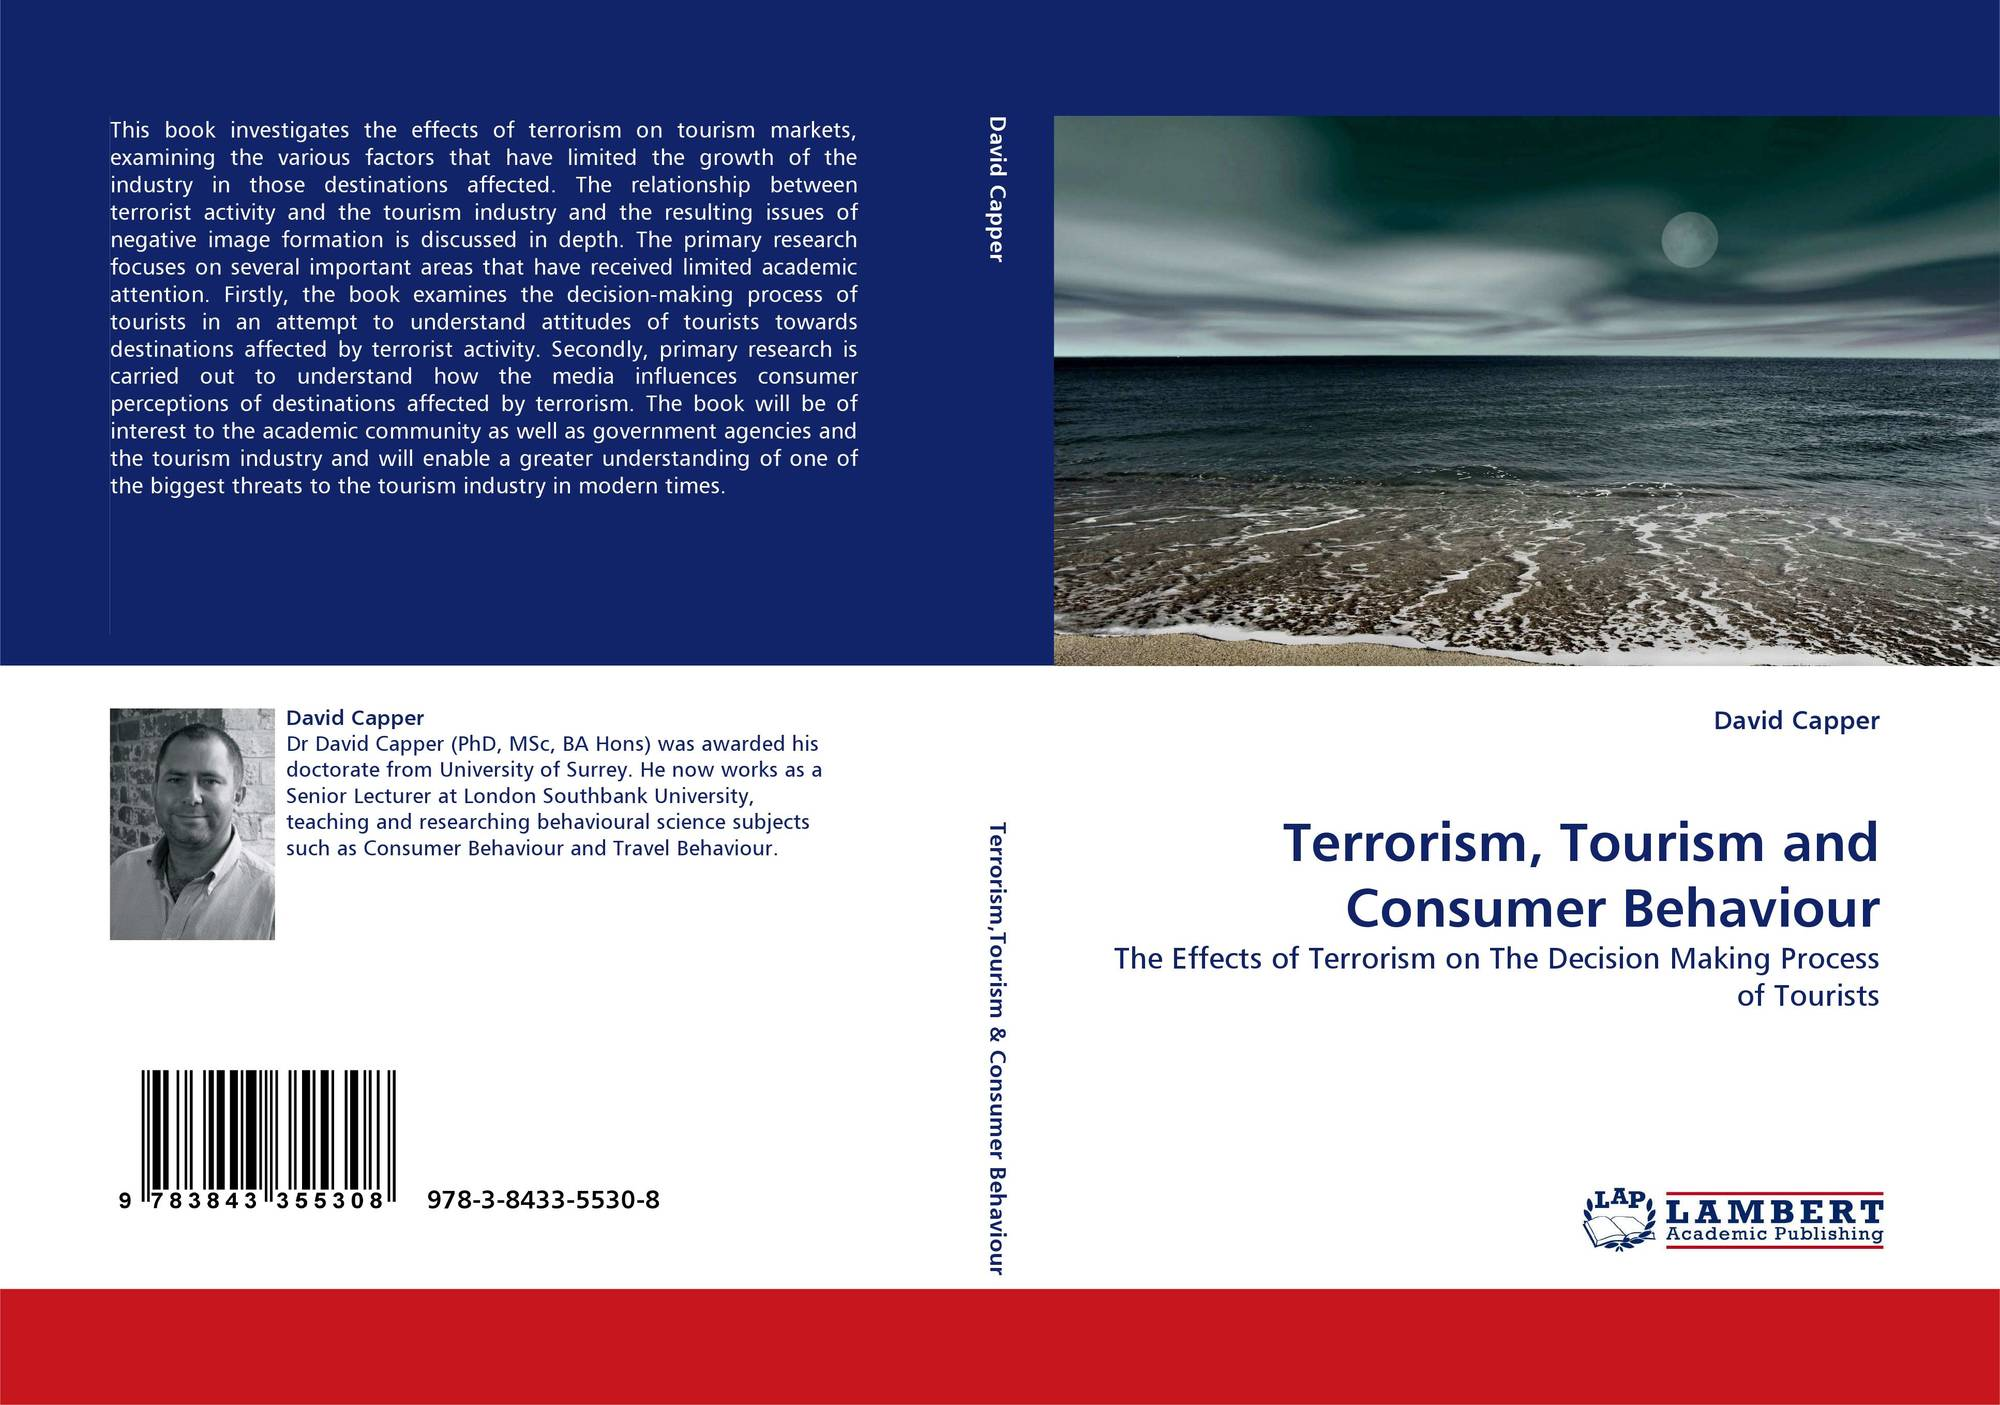 terrorism on tourism The paper reviews trends in travel and tourism in selected asia pacific countries before and after the terrorist attacks of september 11, 2001 (9/11) to consider the question of whether or not global tourism has fundamentally changed since 9/11 tourism is an important economic sector in several asia pacific countries and is.